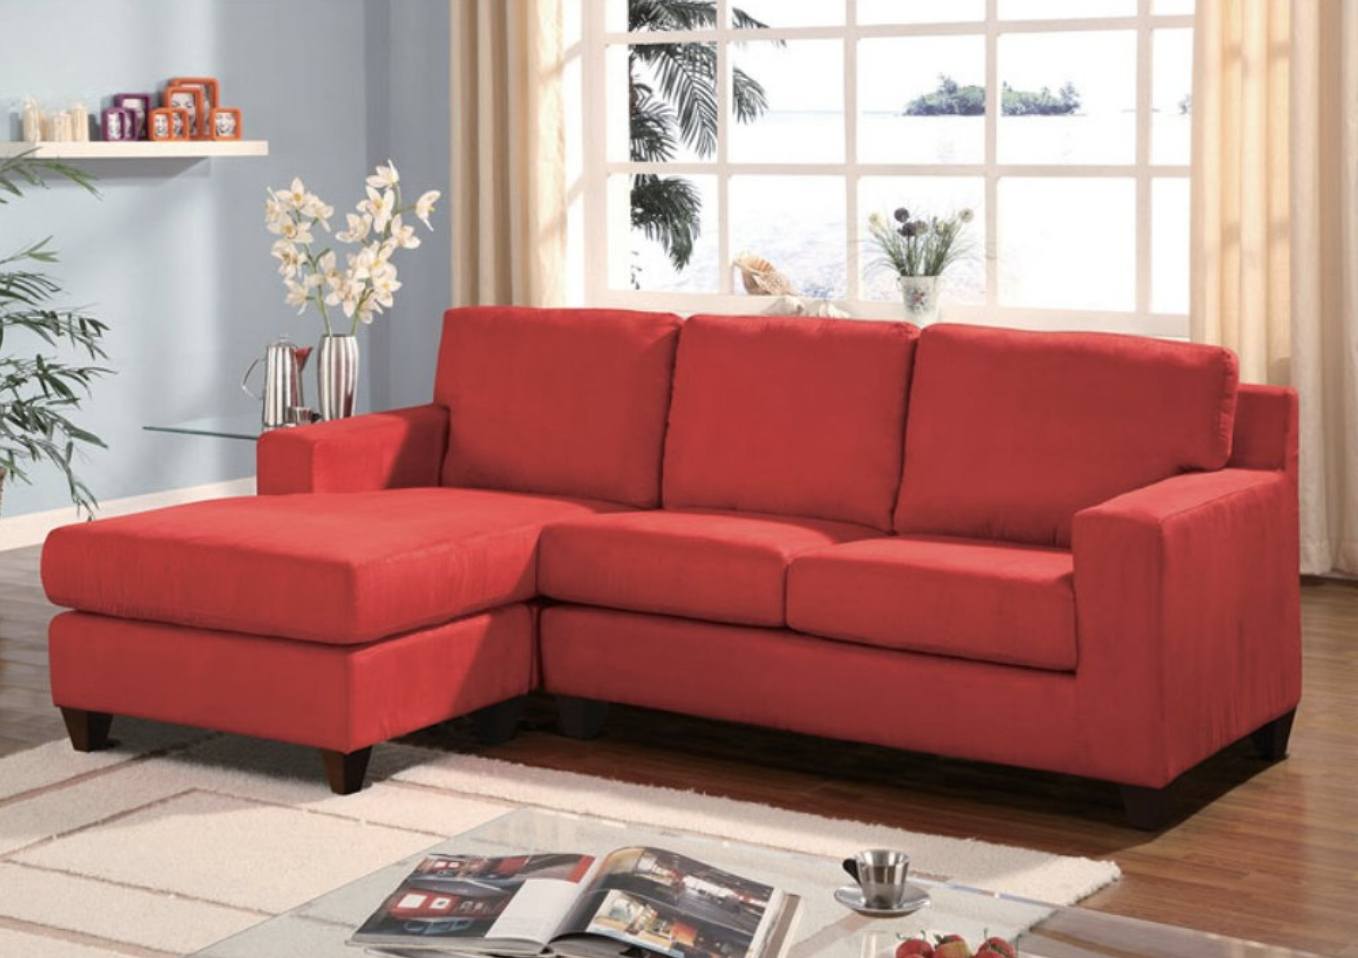 Red Leather Sectionals With Ottoman With Well Known 75 Modern Sectional Sofas For Small Spaces (2018) (View 18 of 20)